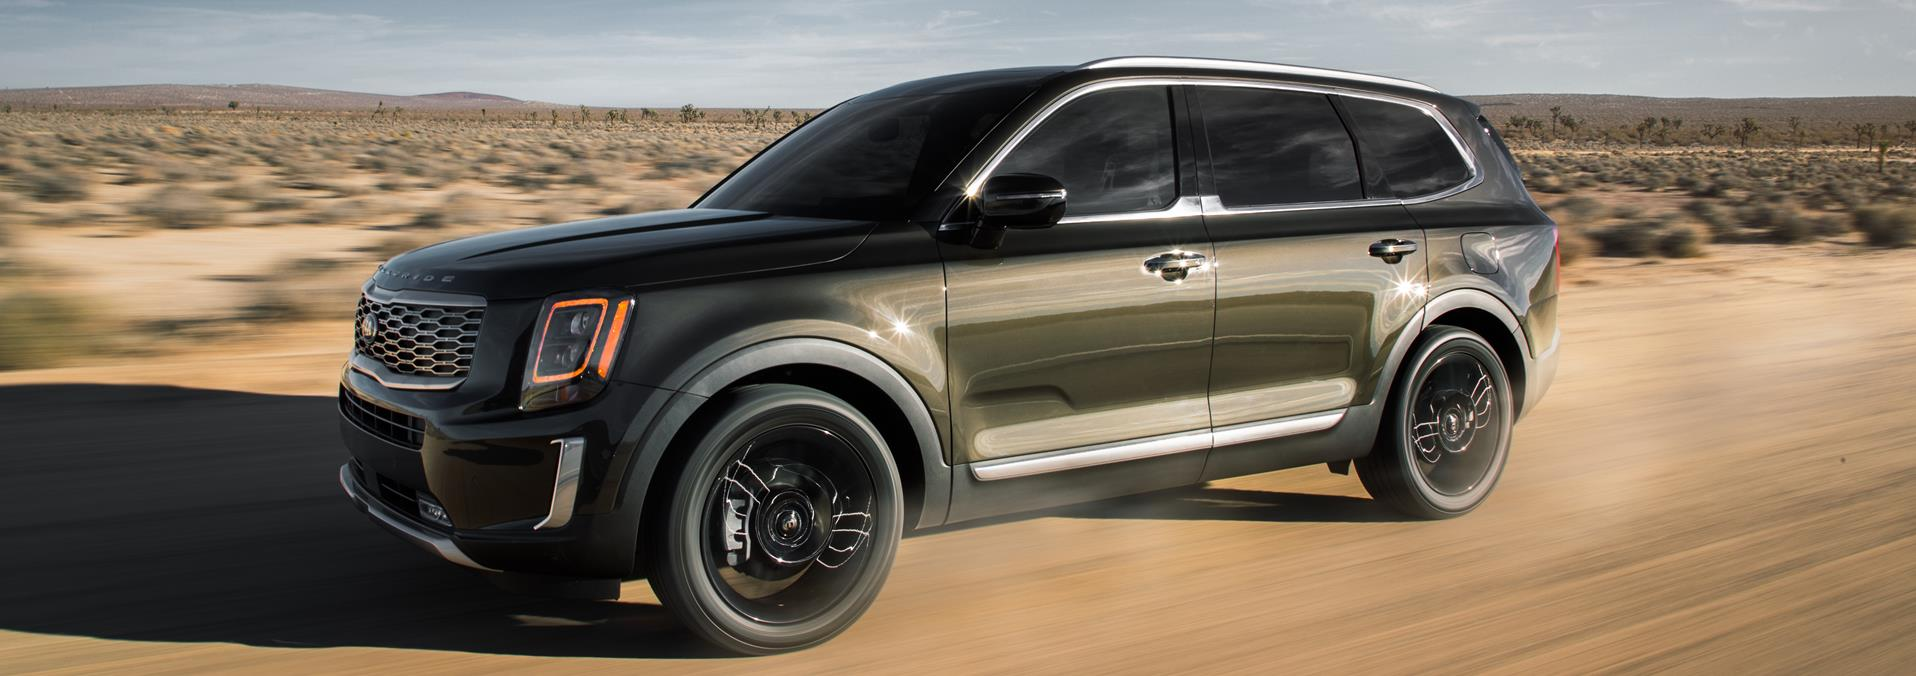 2020 Kia Telluride Now in Stock For Immediate Delivery!  Hurry in today!